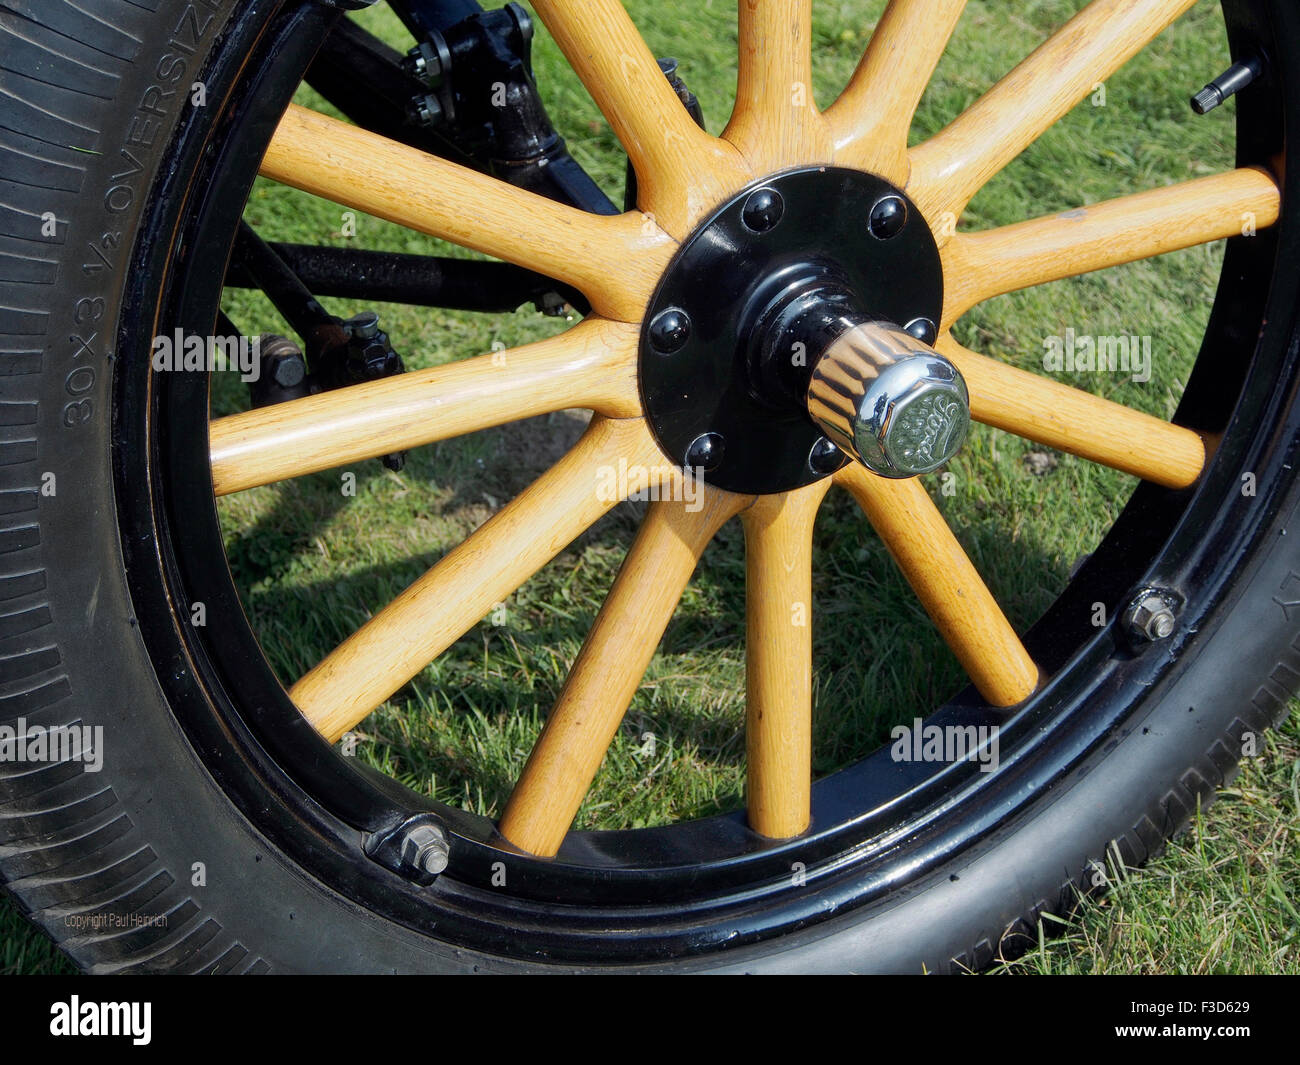 Wooden Spoked Wheel Stock Photos & Wooden Spoked Wheel Stock Images ...